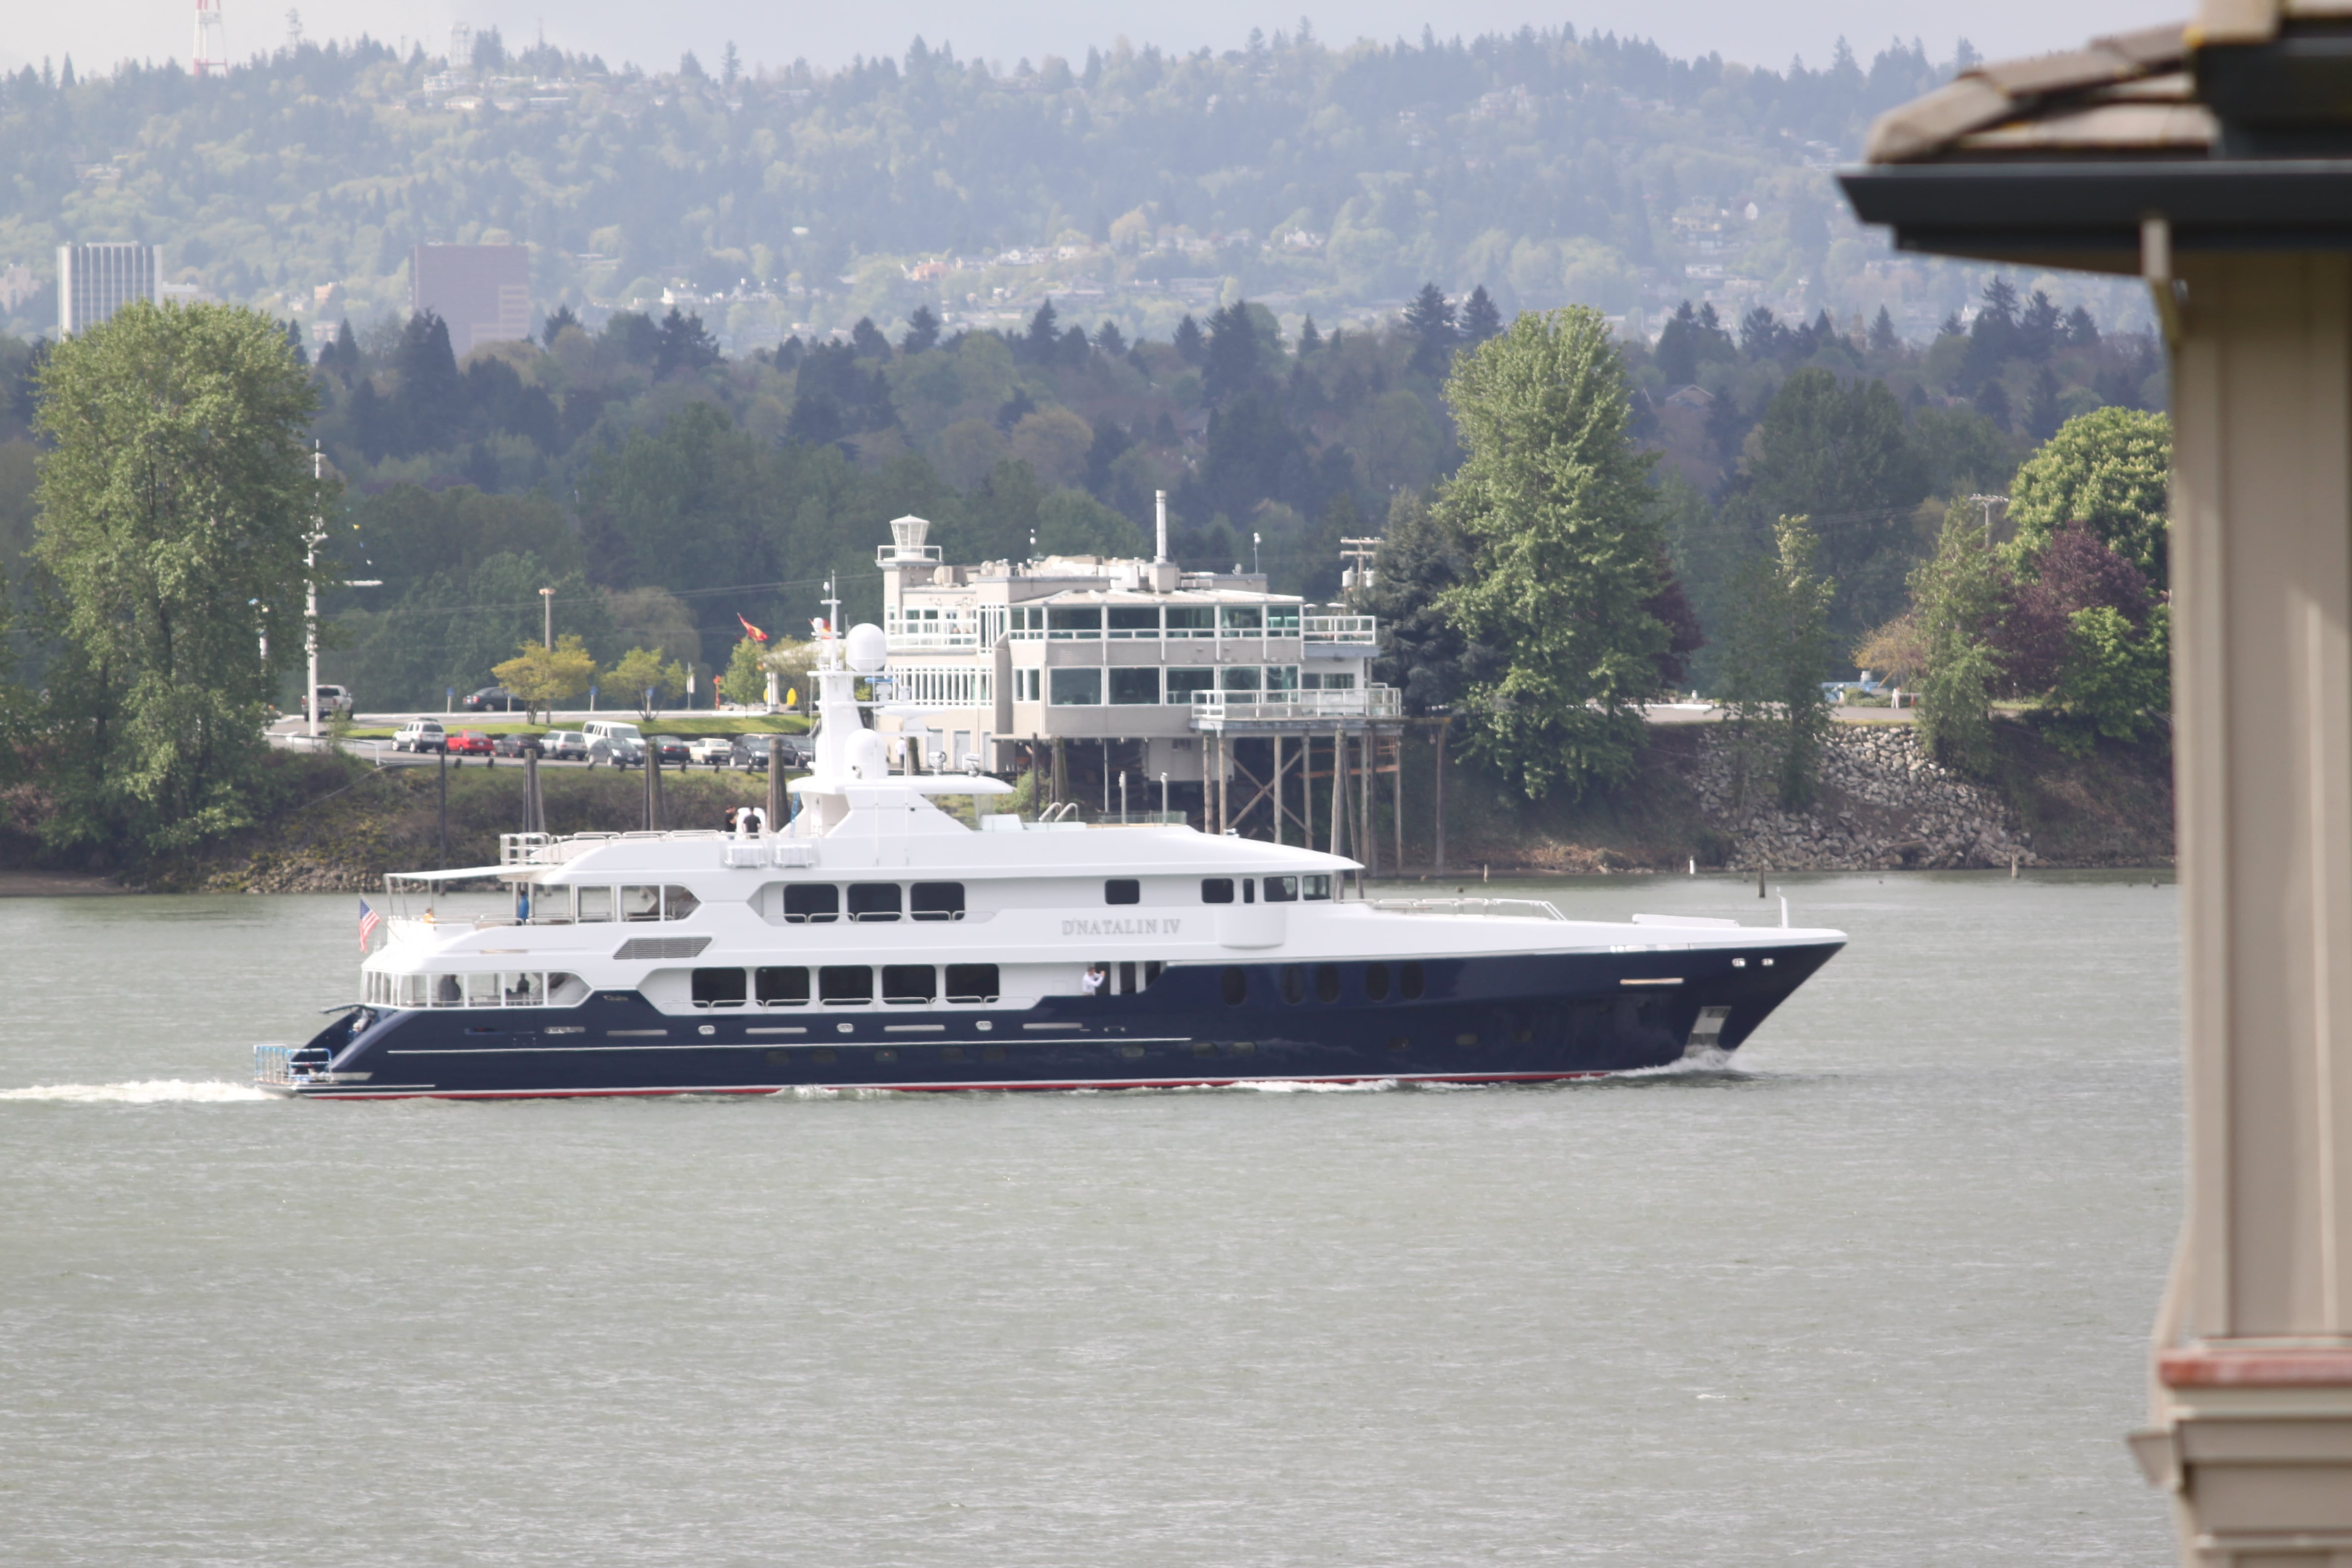 D'NATALIN IV specs with detailed specification and builder summary